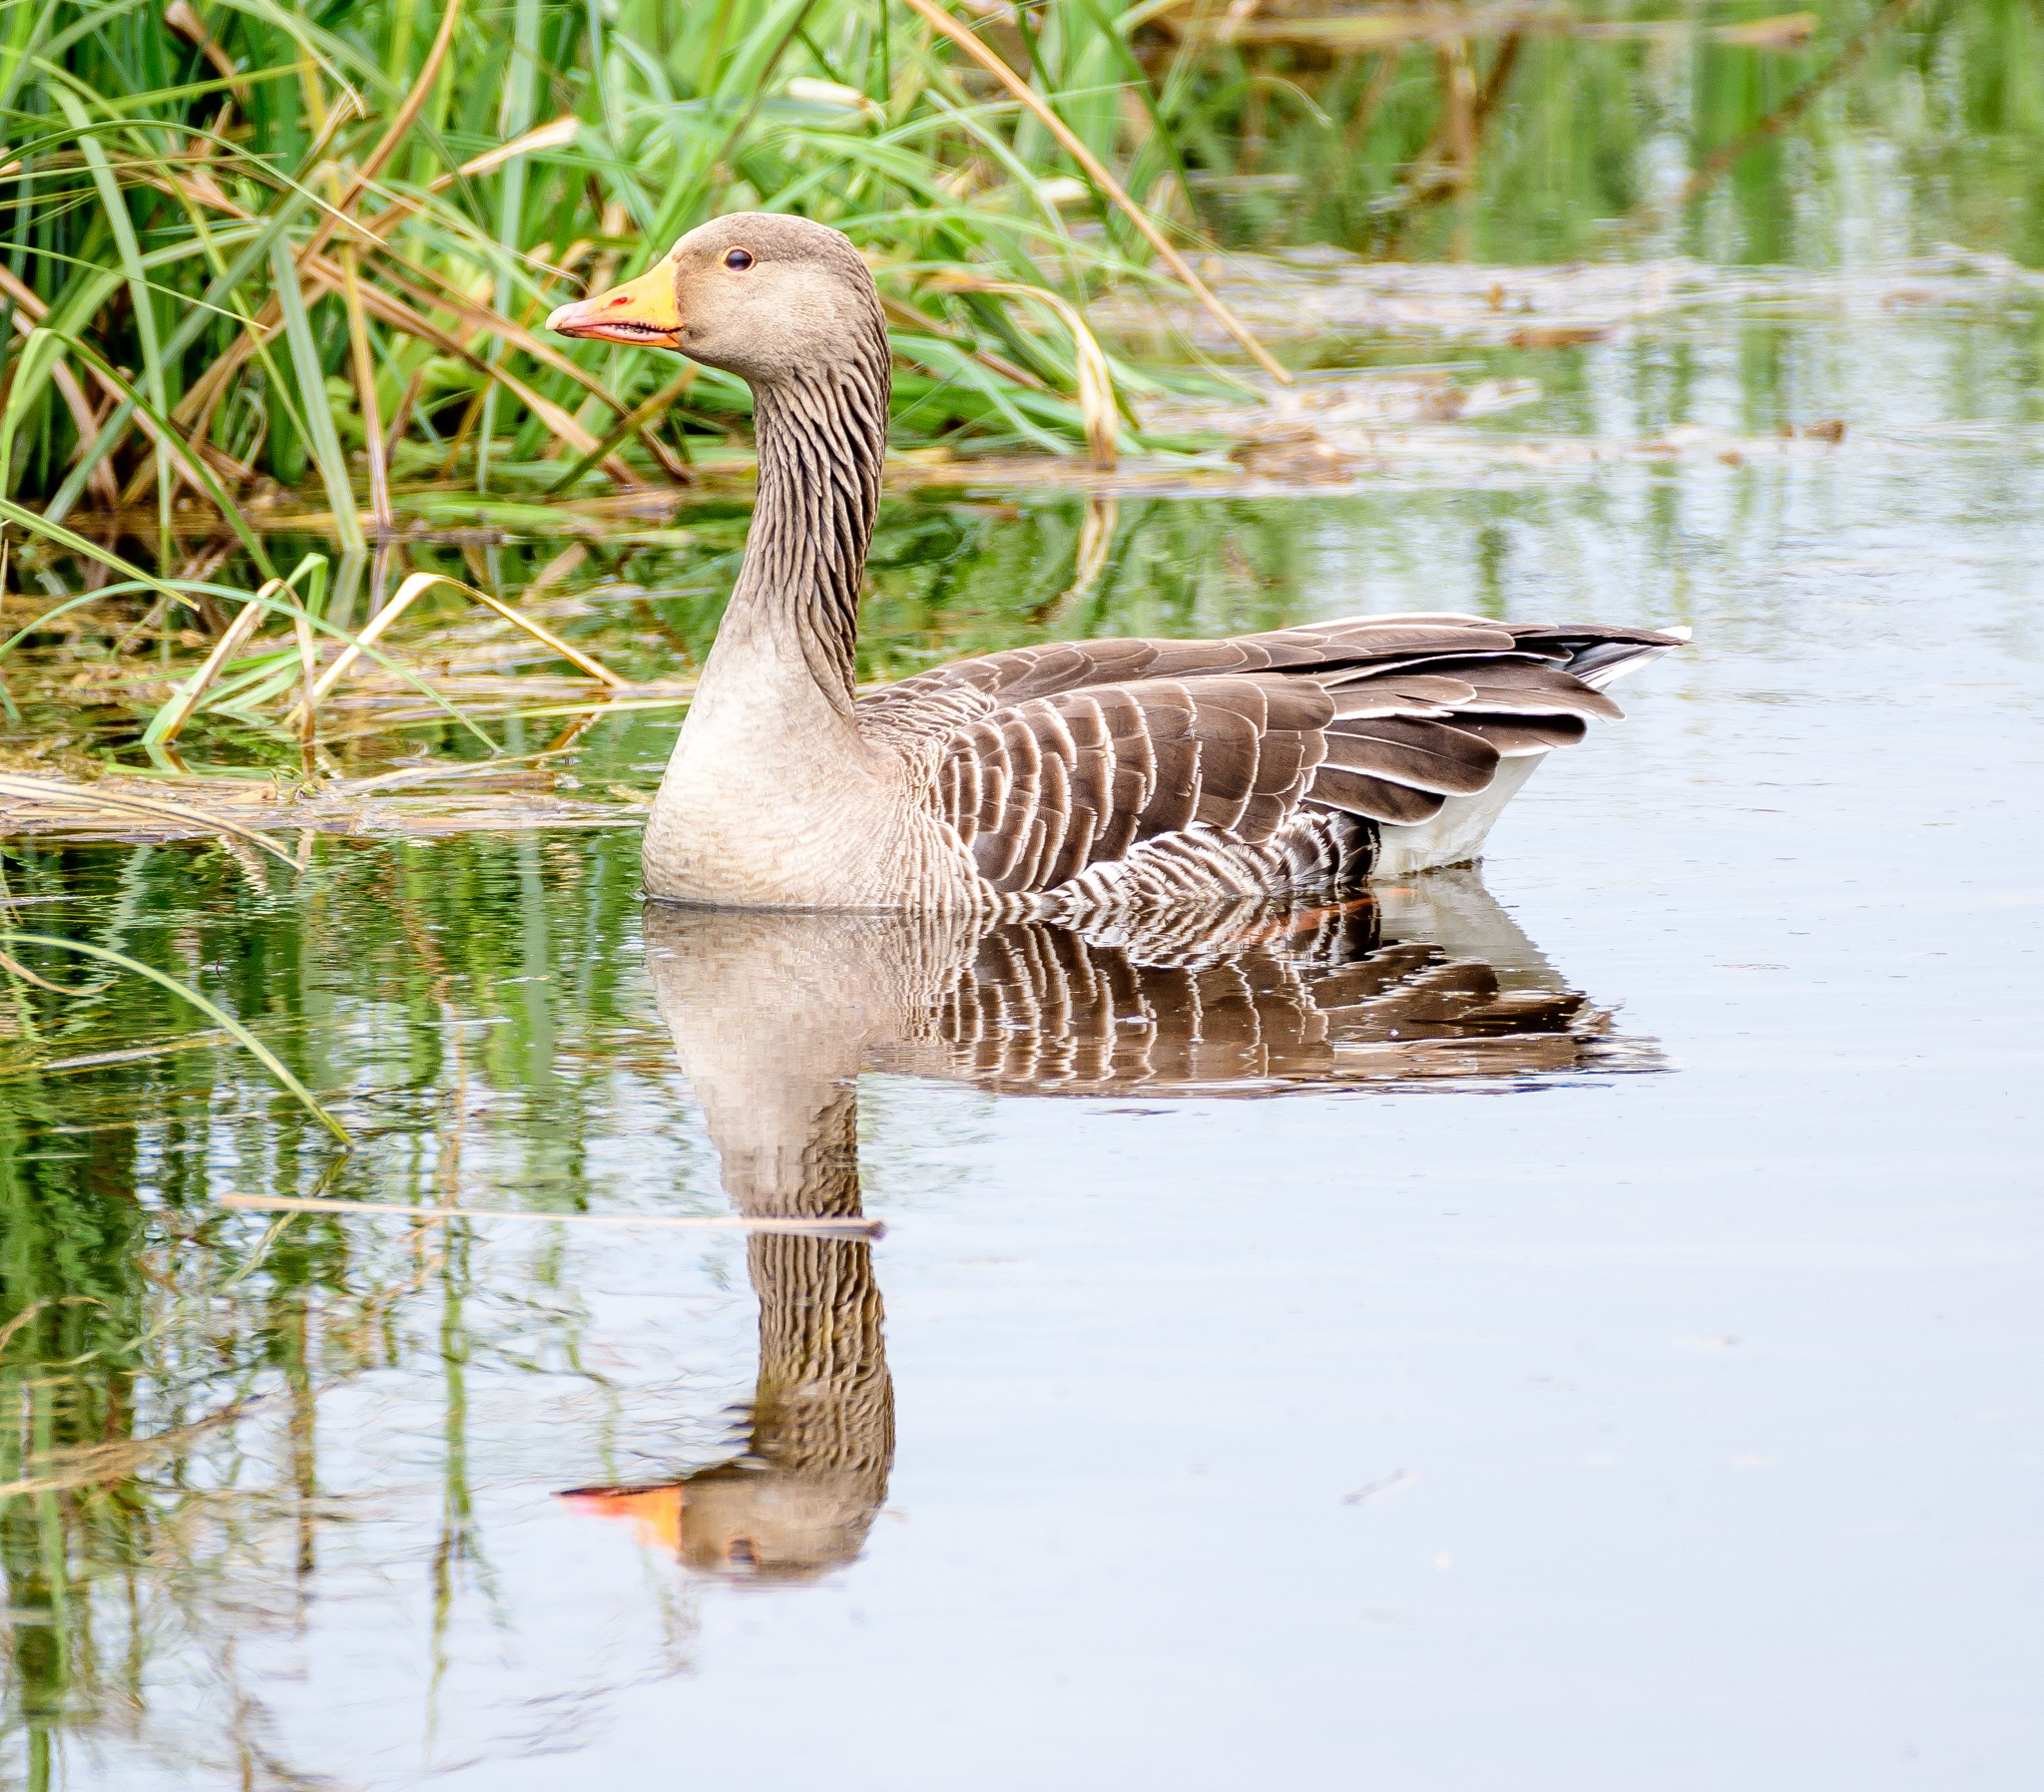 Reflecting on the Greylag Goose by Paul Collins